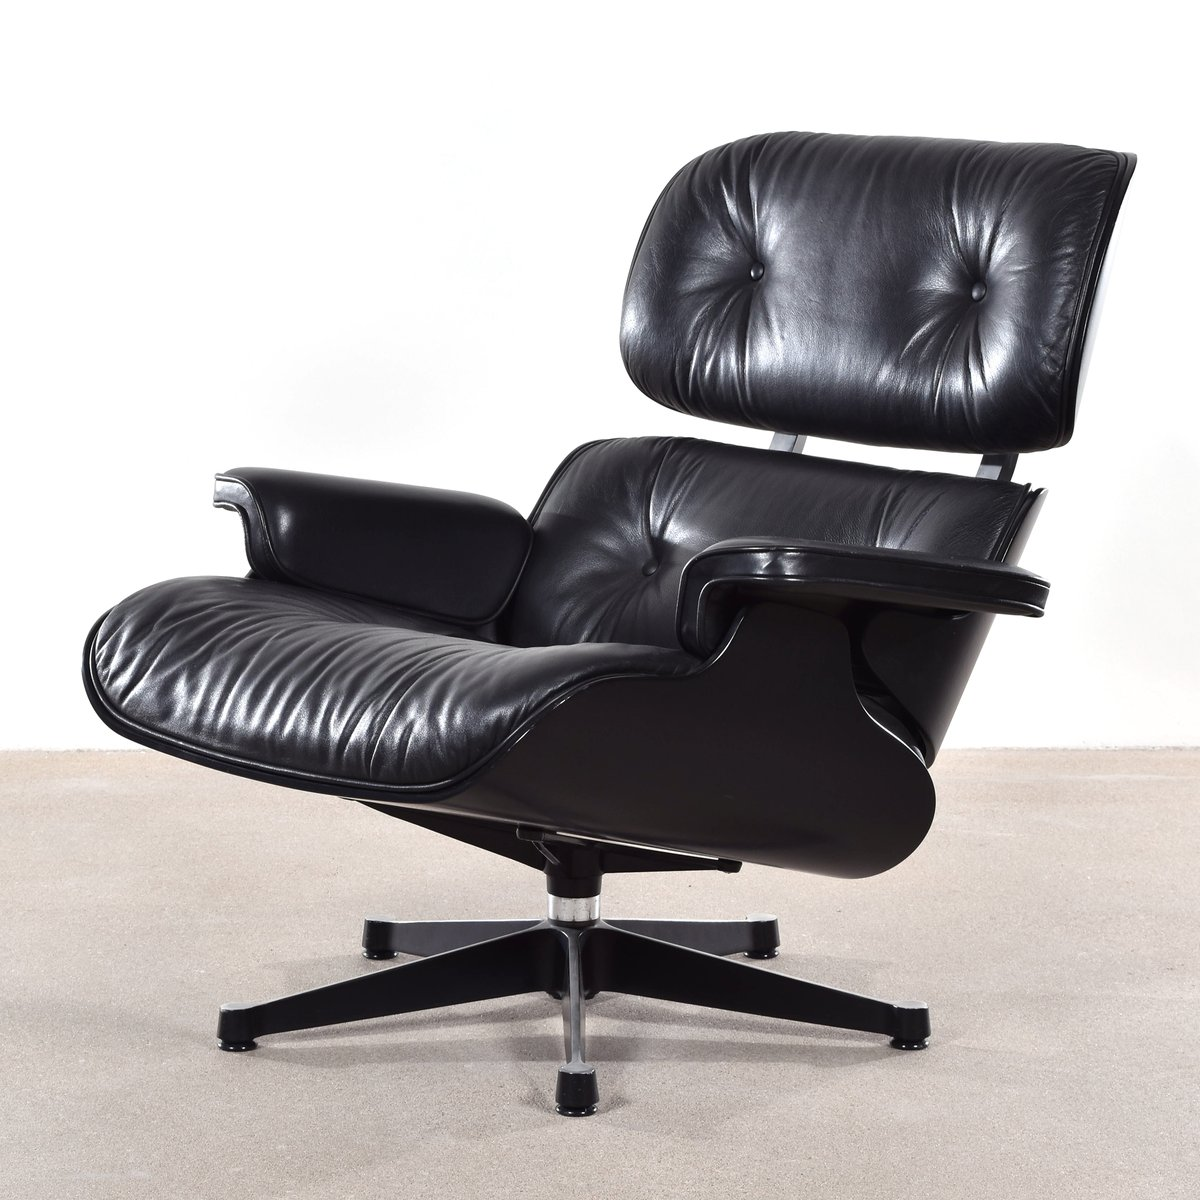 Vitra Lounge Chair Eames german lounge chair by charles eames for vitra 1988 for sale